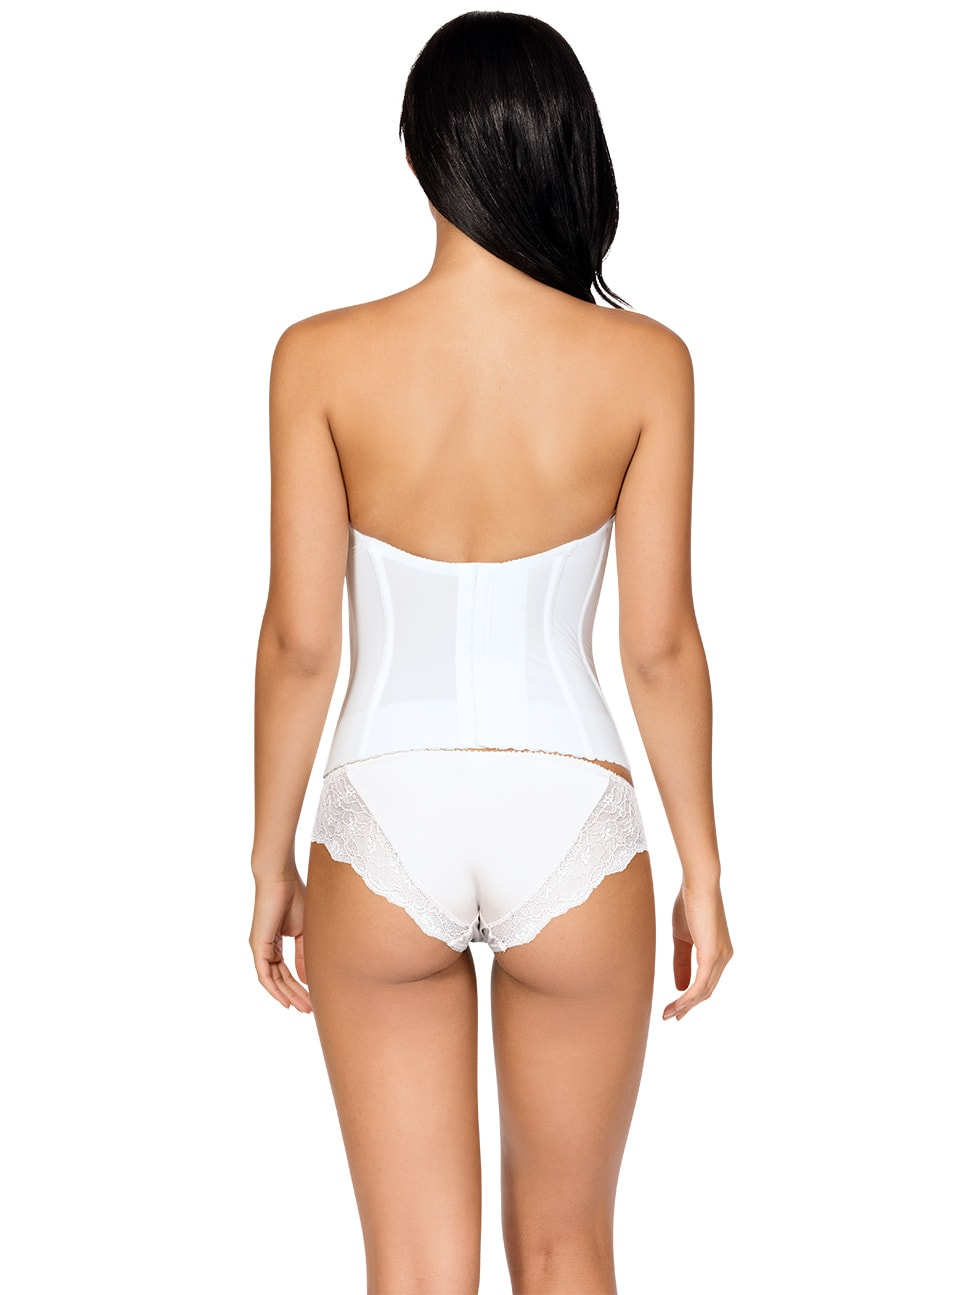 PARFAIT Elissa Low BackBustierP5017 BikiniP5013 PearlWhite Back copy - Elissa Low-Back Bustier - Pearl White - P5017